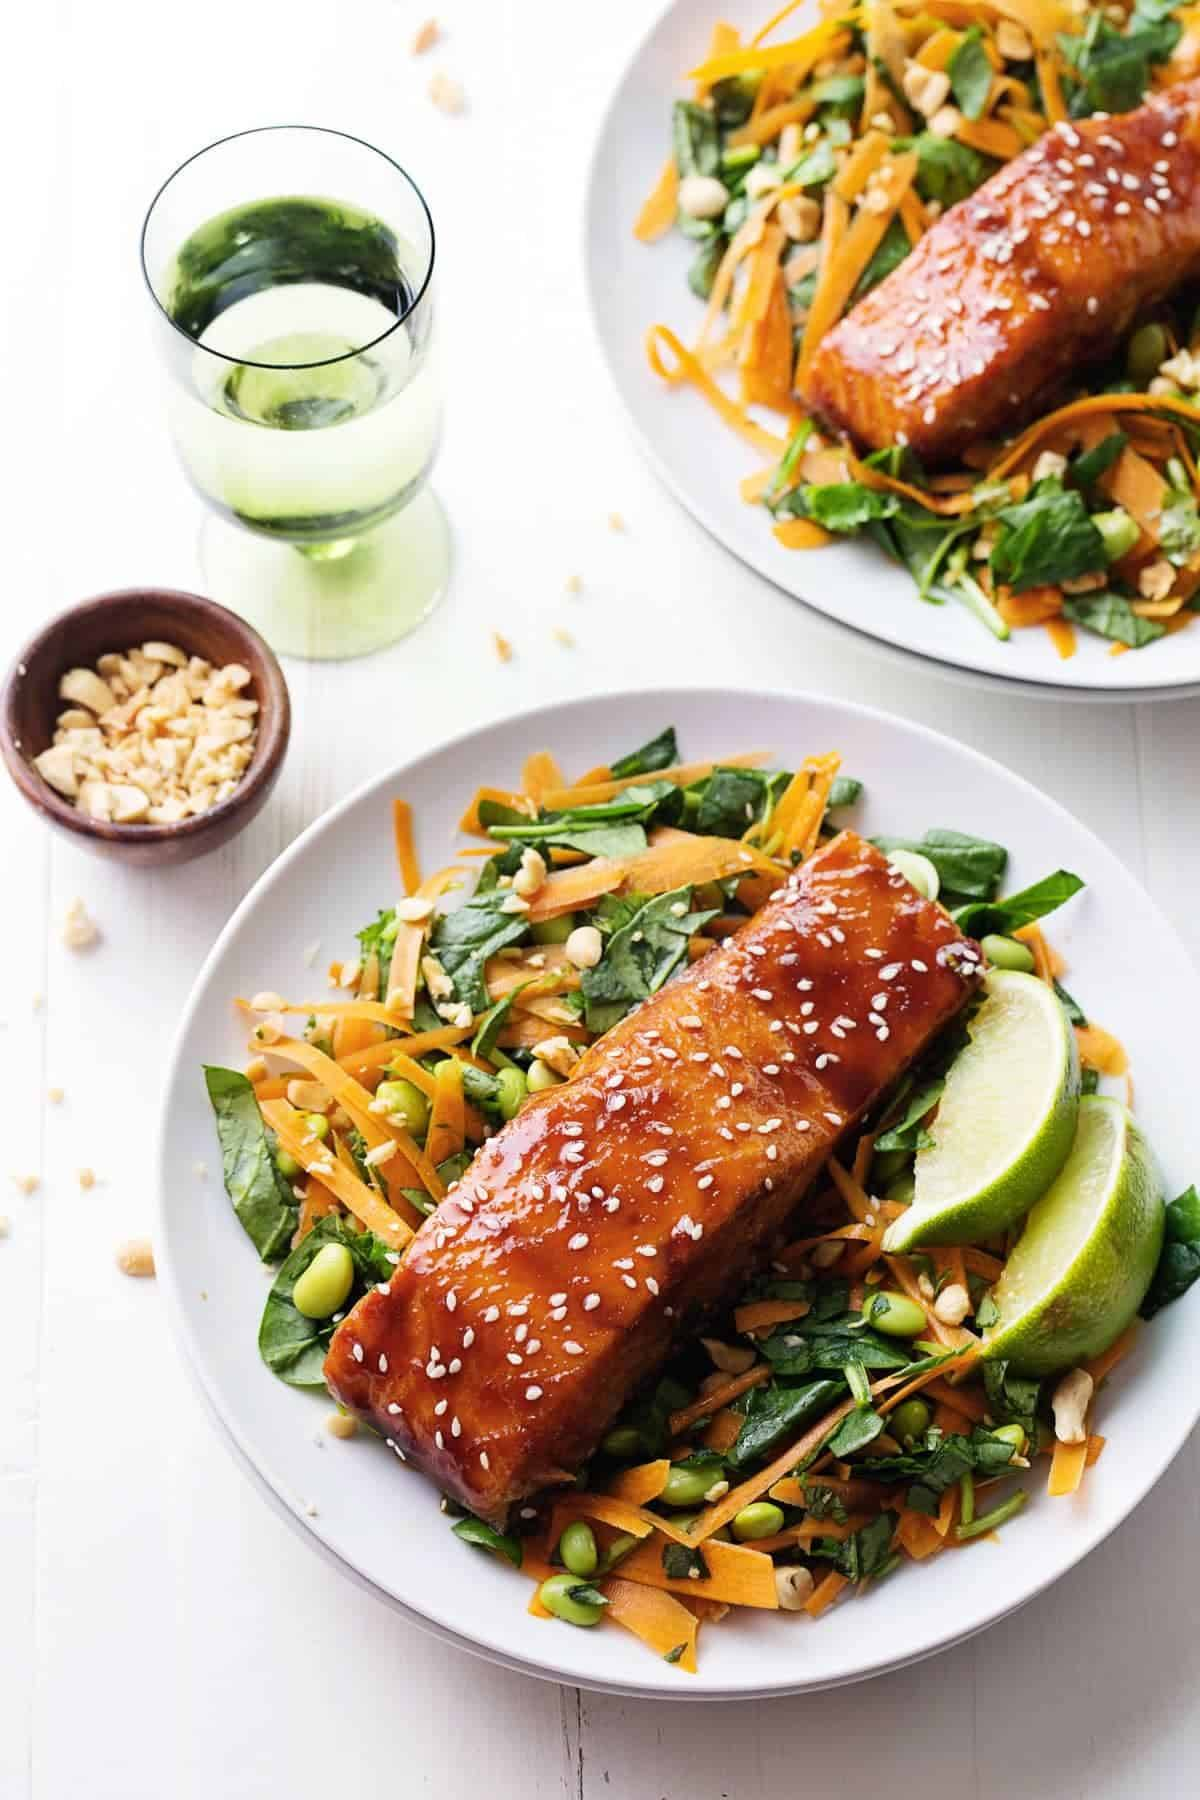 Glazed Salmon on top of green salad.